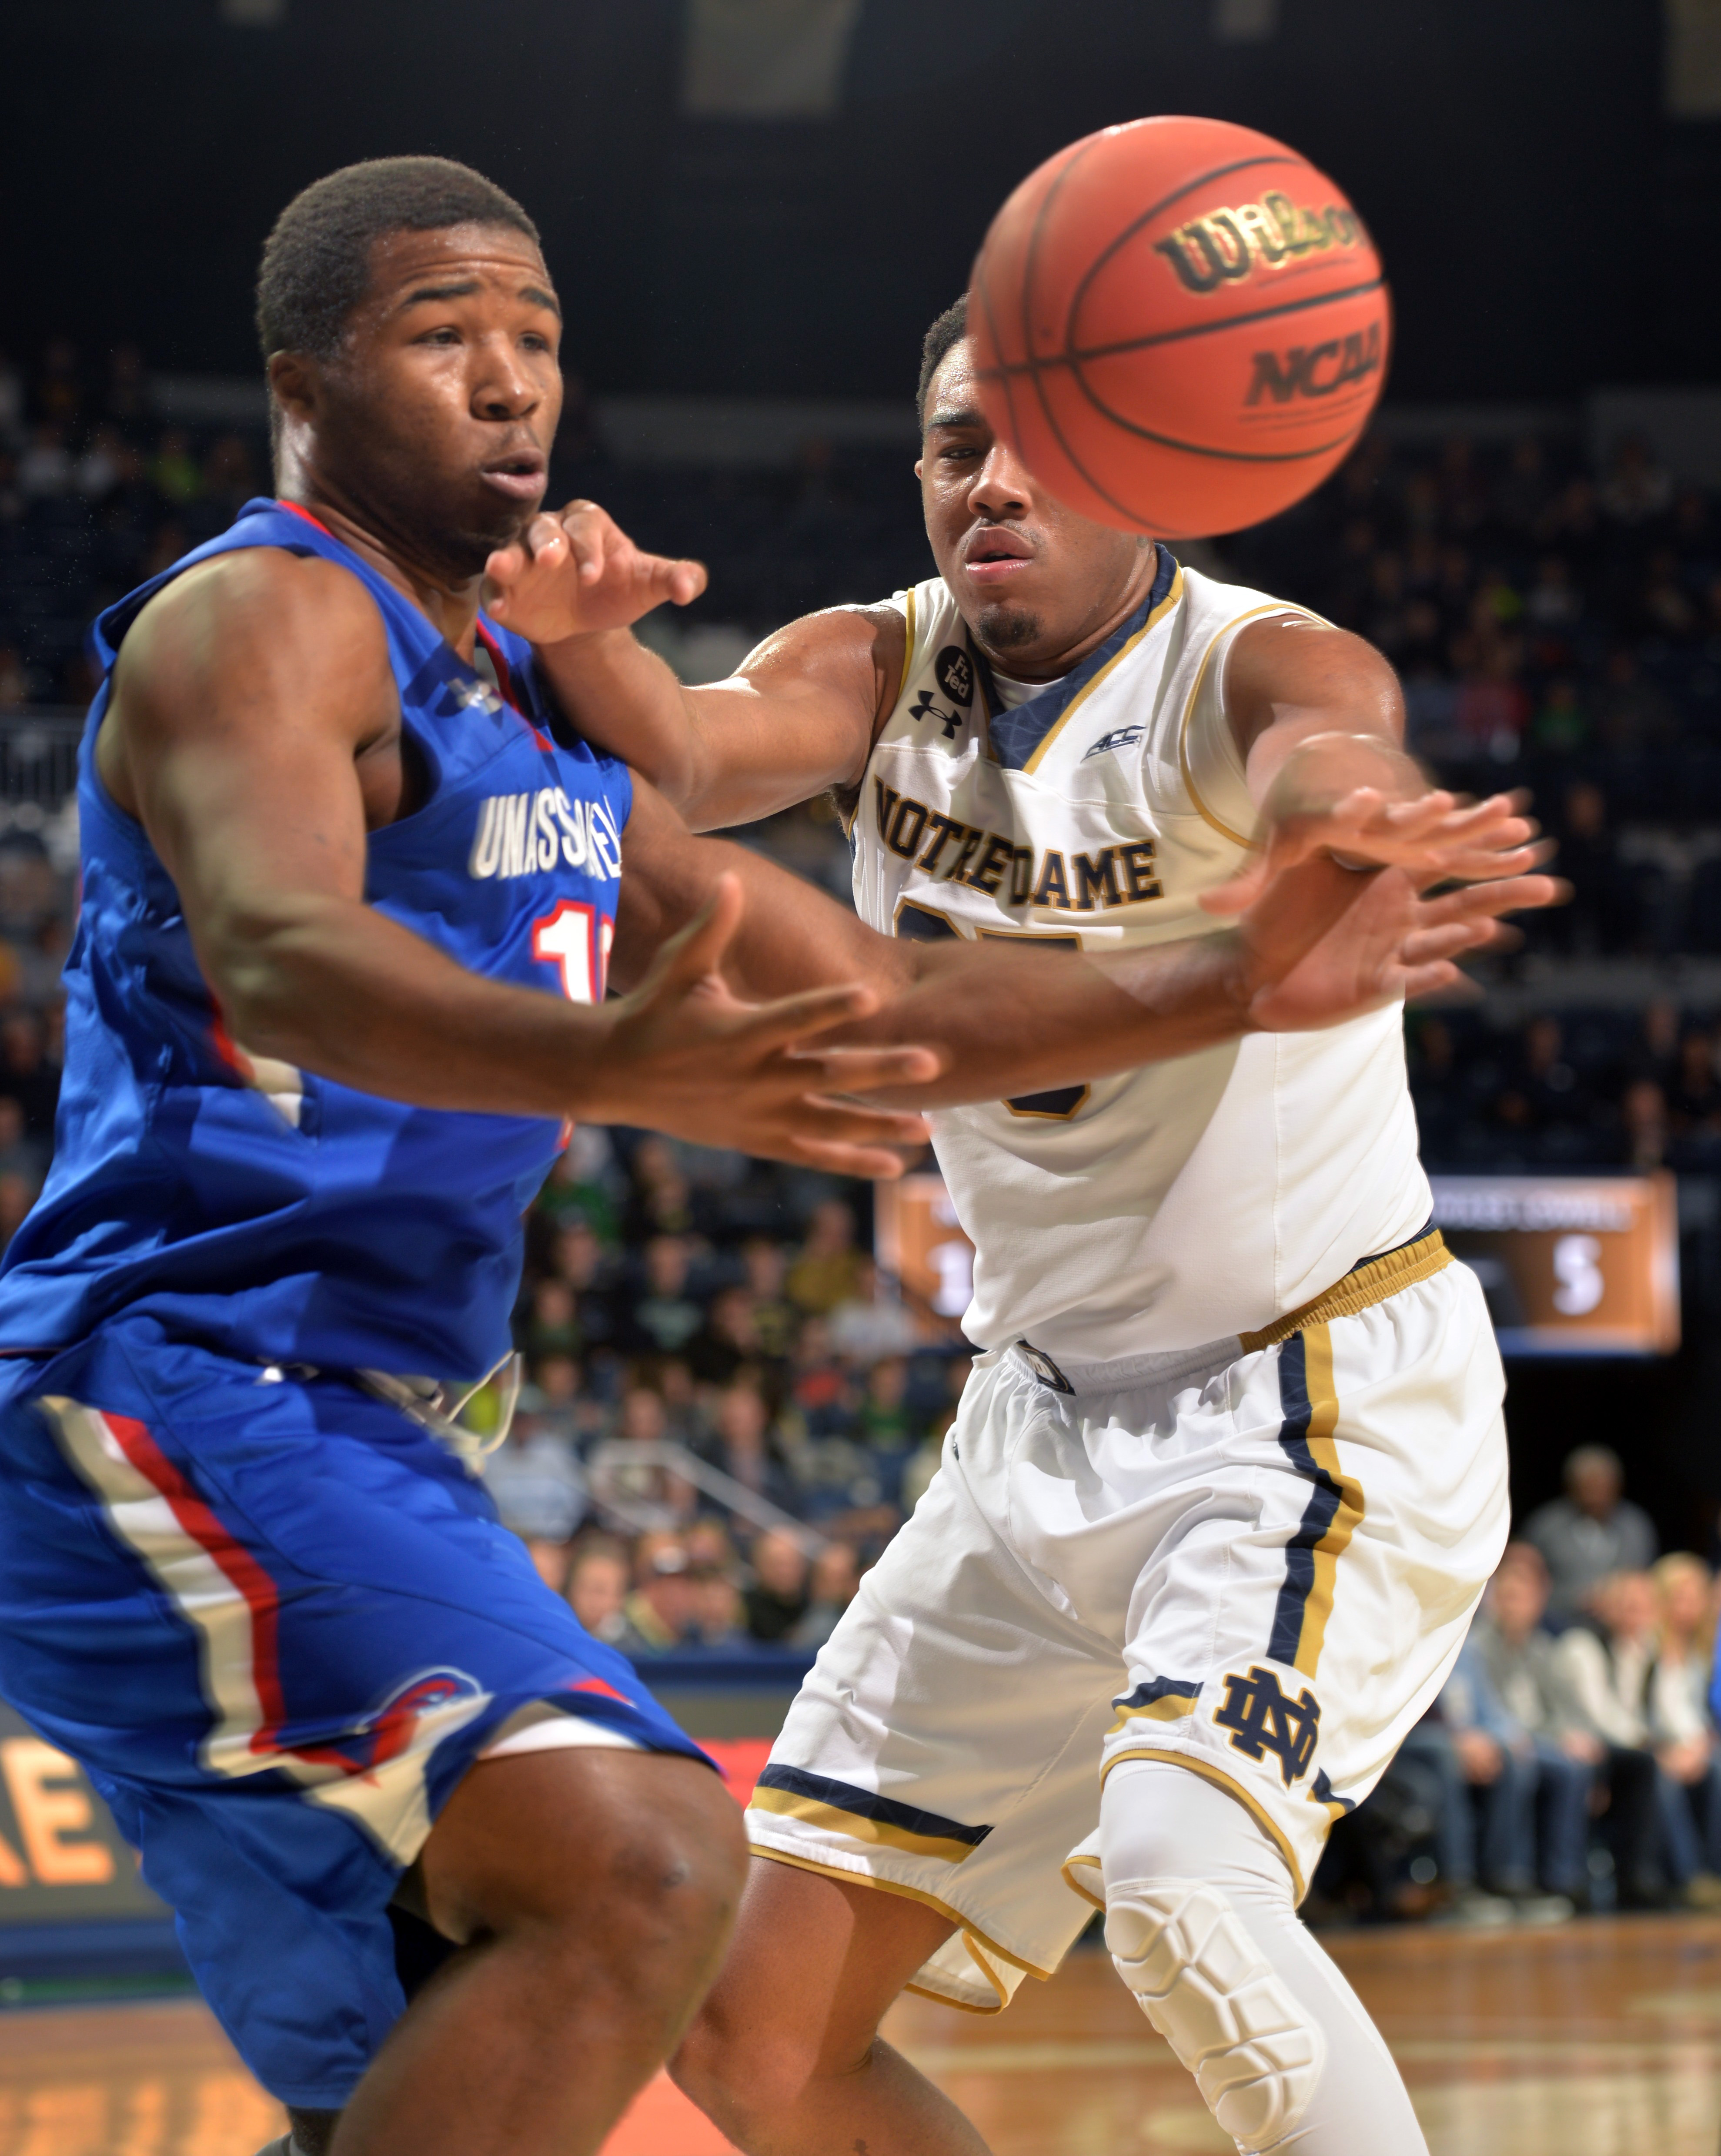 Notre Dame forward Bonzie Colson, right and U Mass Lowell Jahad Thomas reach for a loose ball during first half action in an NCAA college basketball game, Saturday Nov. 21, 2015 in South Bend, Ind. (AP Photo/Joe Raymond)